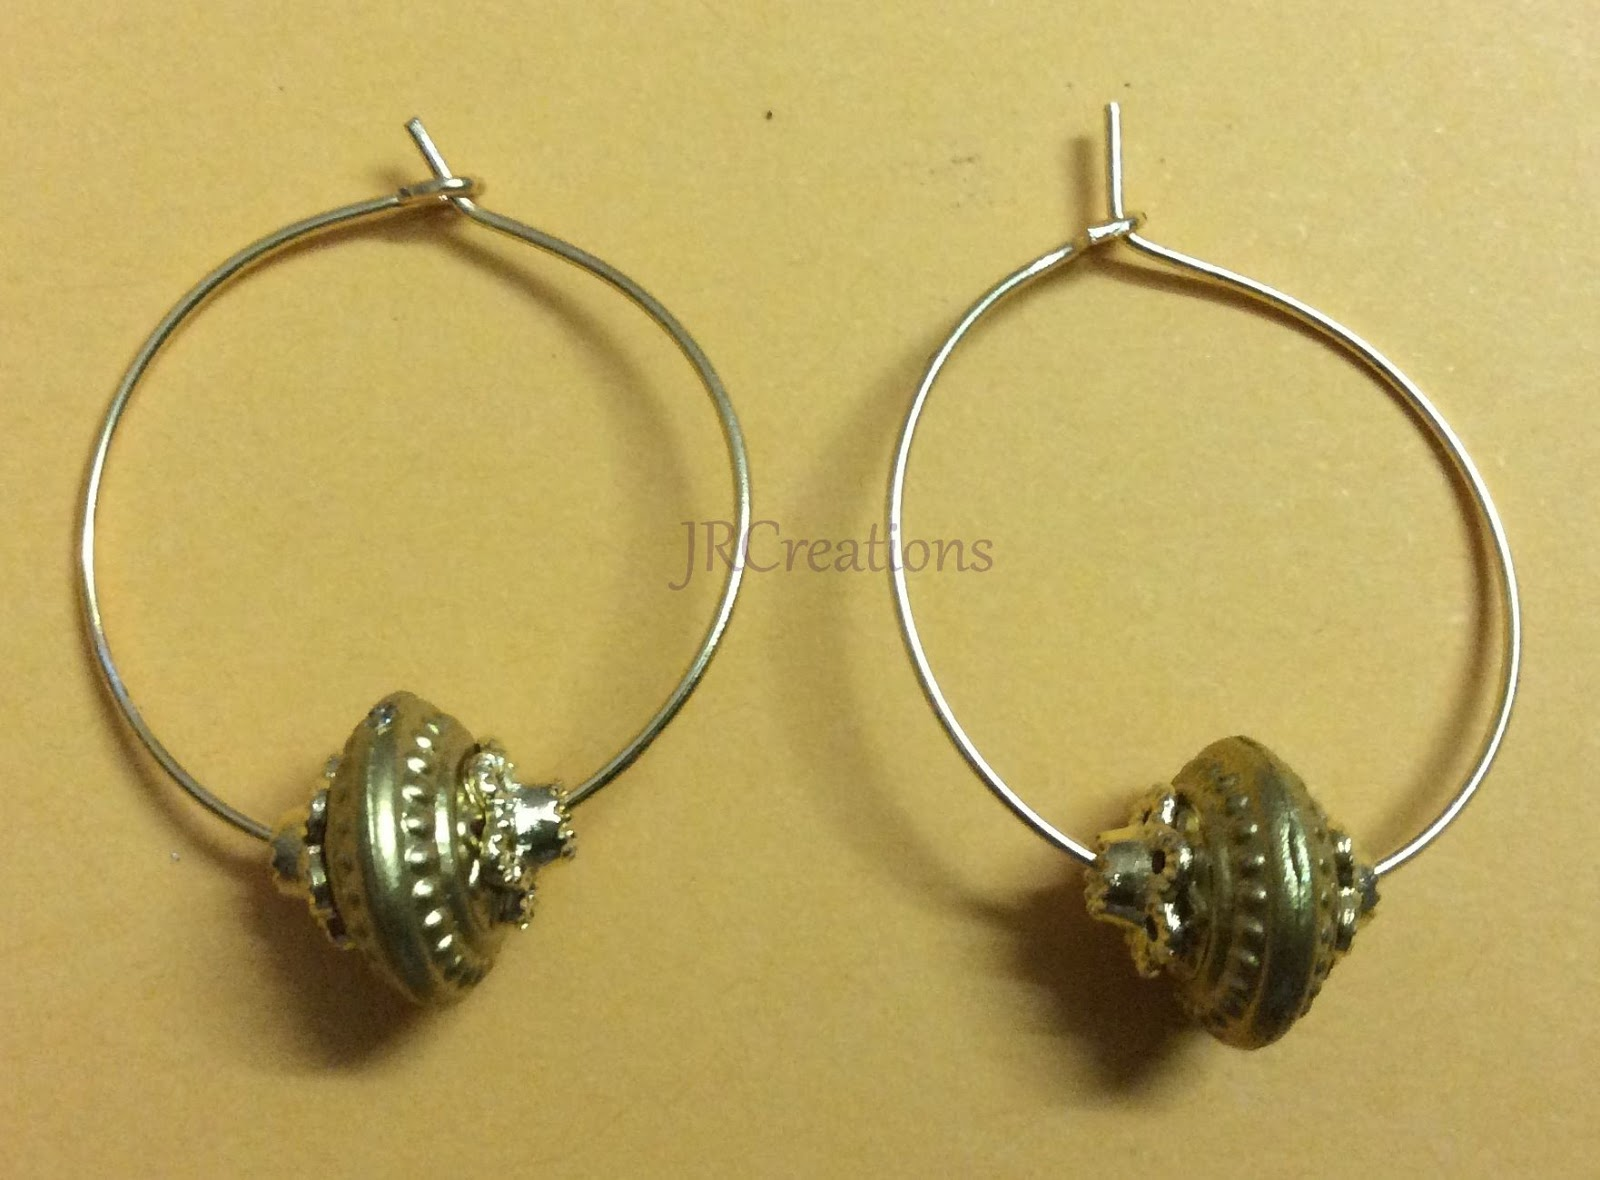 Drop earrings not bombs: The Syrian refugee story you haven't read yet